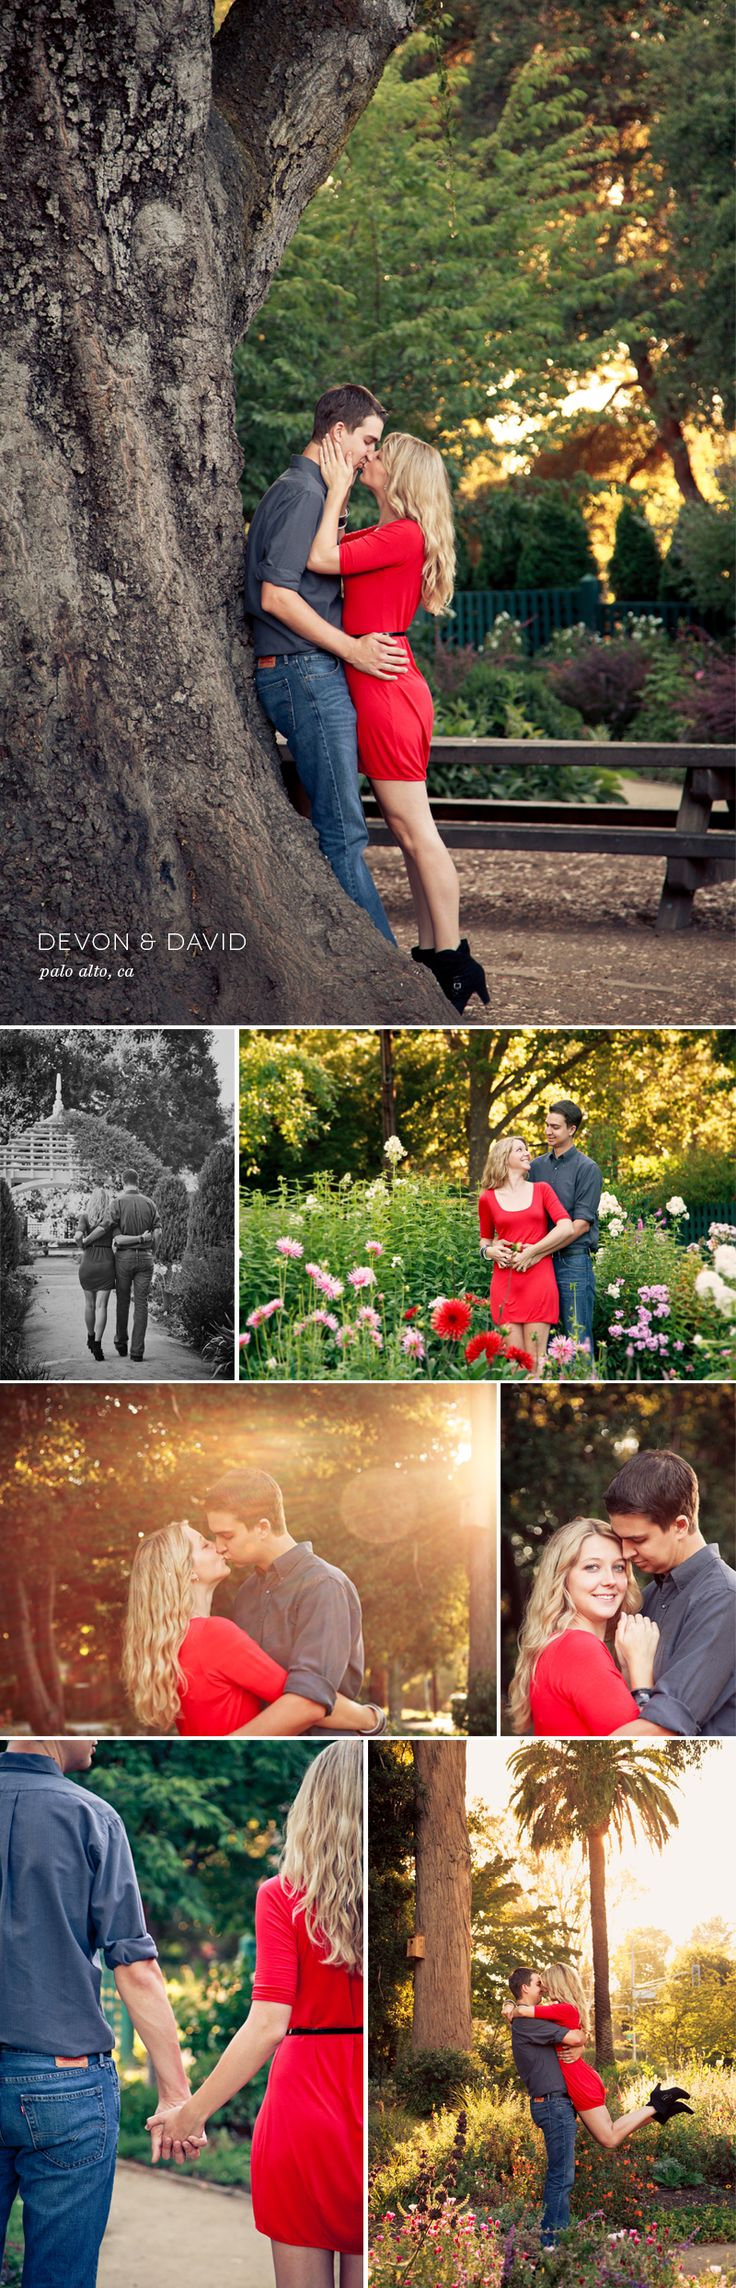 Garden Engagement Photo Session - by zhazhadesign.com